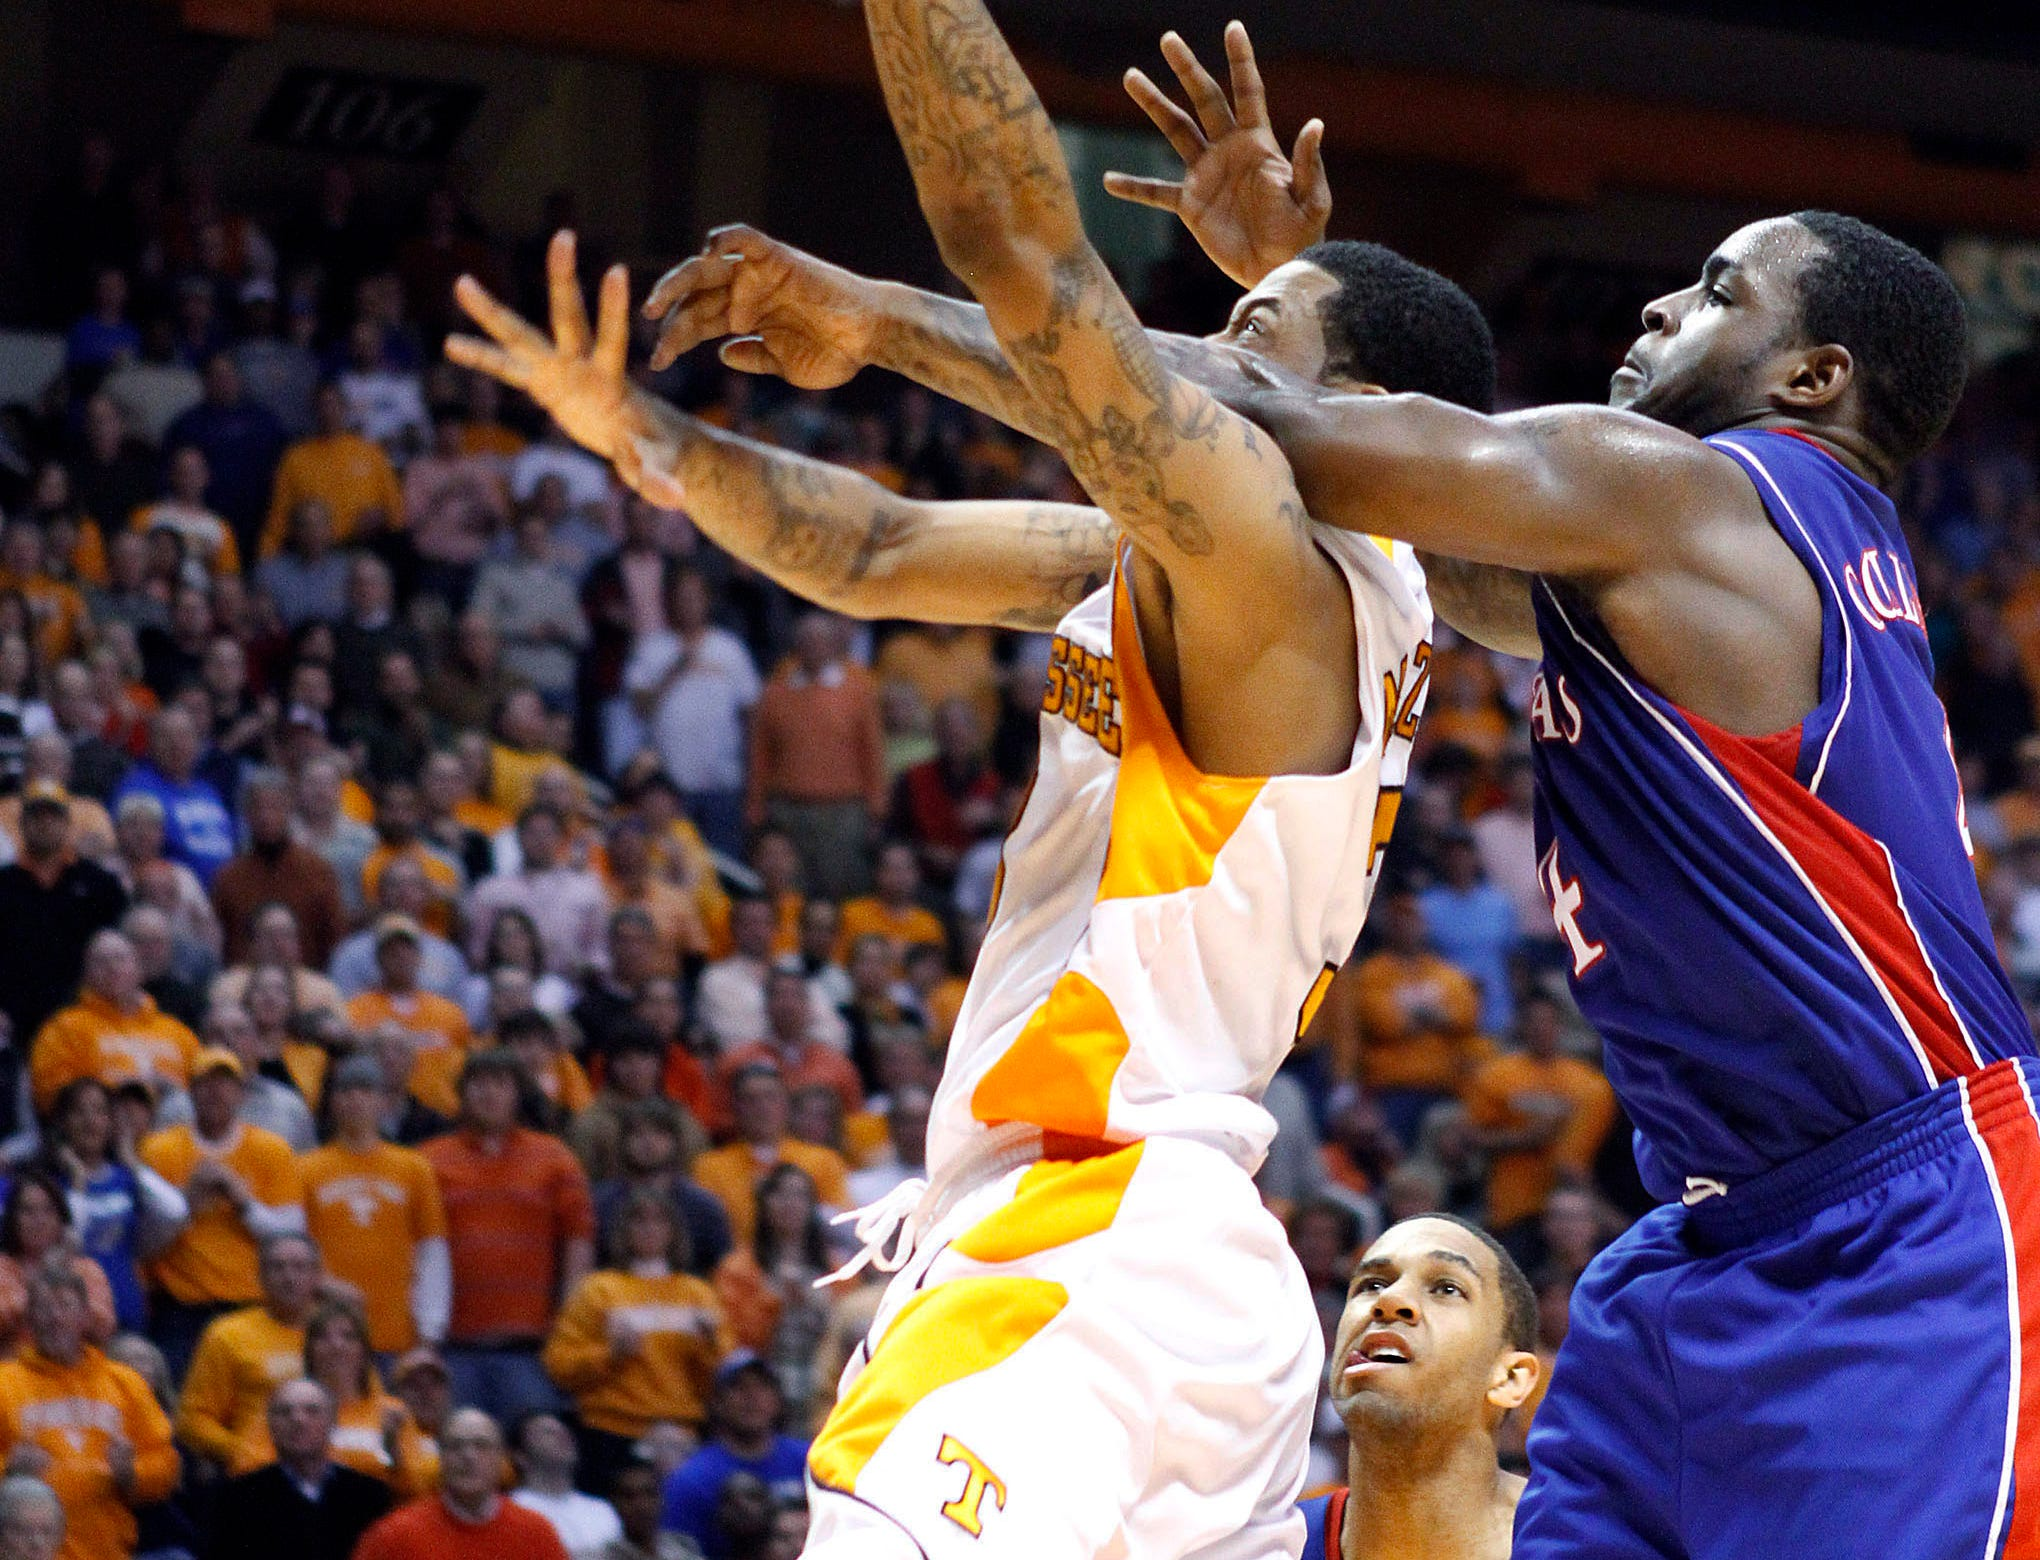 Tennessee's Bobby Maze, left, is fouled by Kansas' Sherron Collins, right, during the second half of an NCAA college basketball game Sunday, Jan. 10, 2010, in Knoxville, Tenn. Tennessee won 76-68.